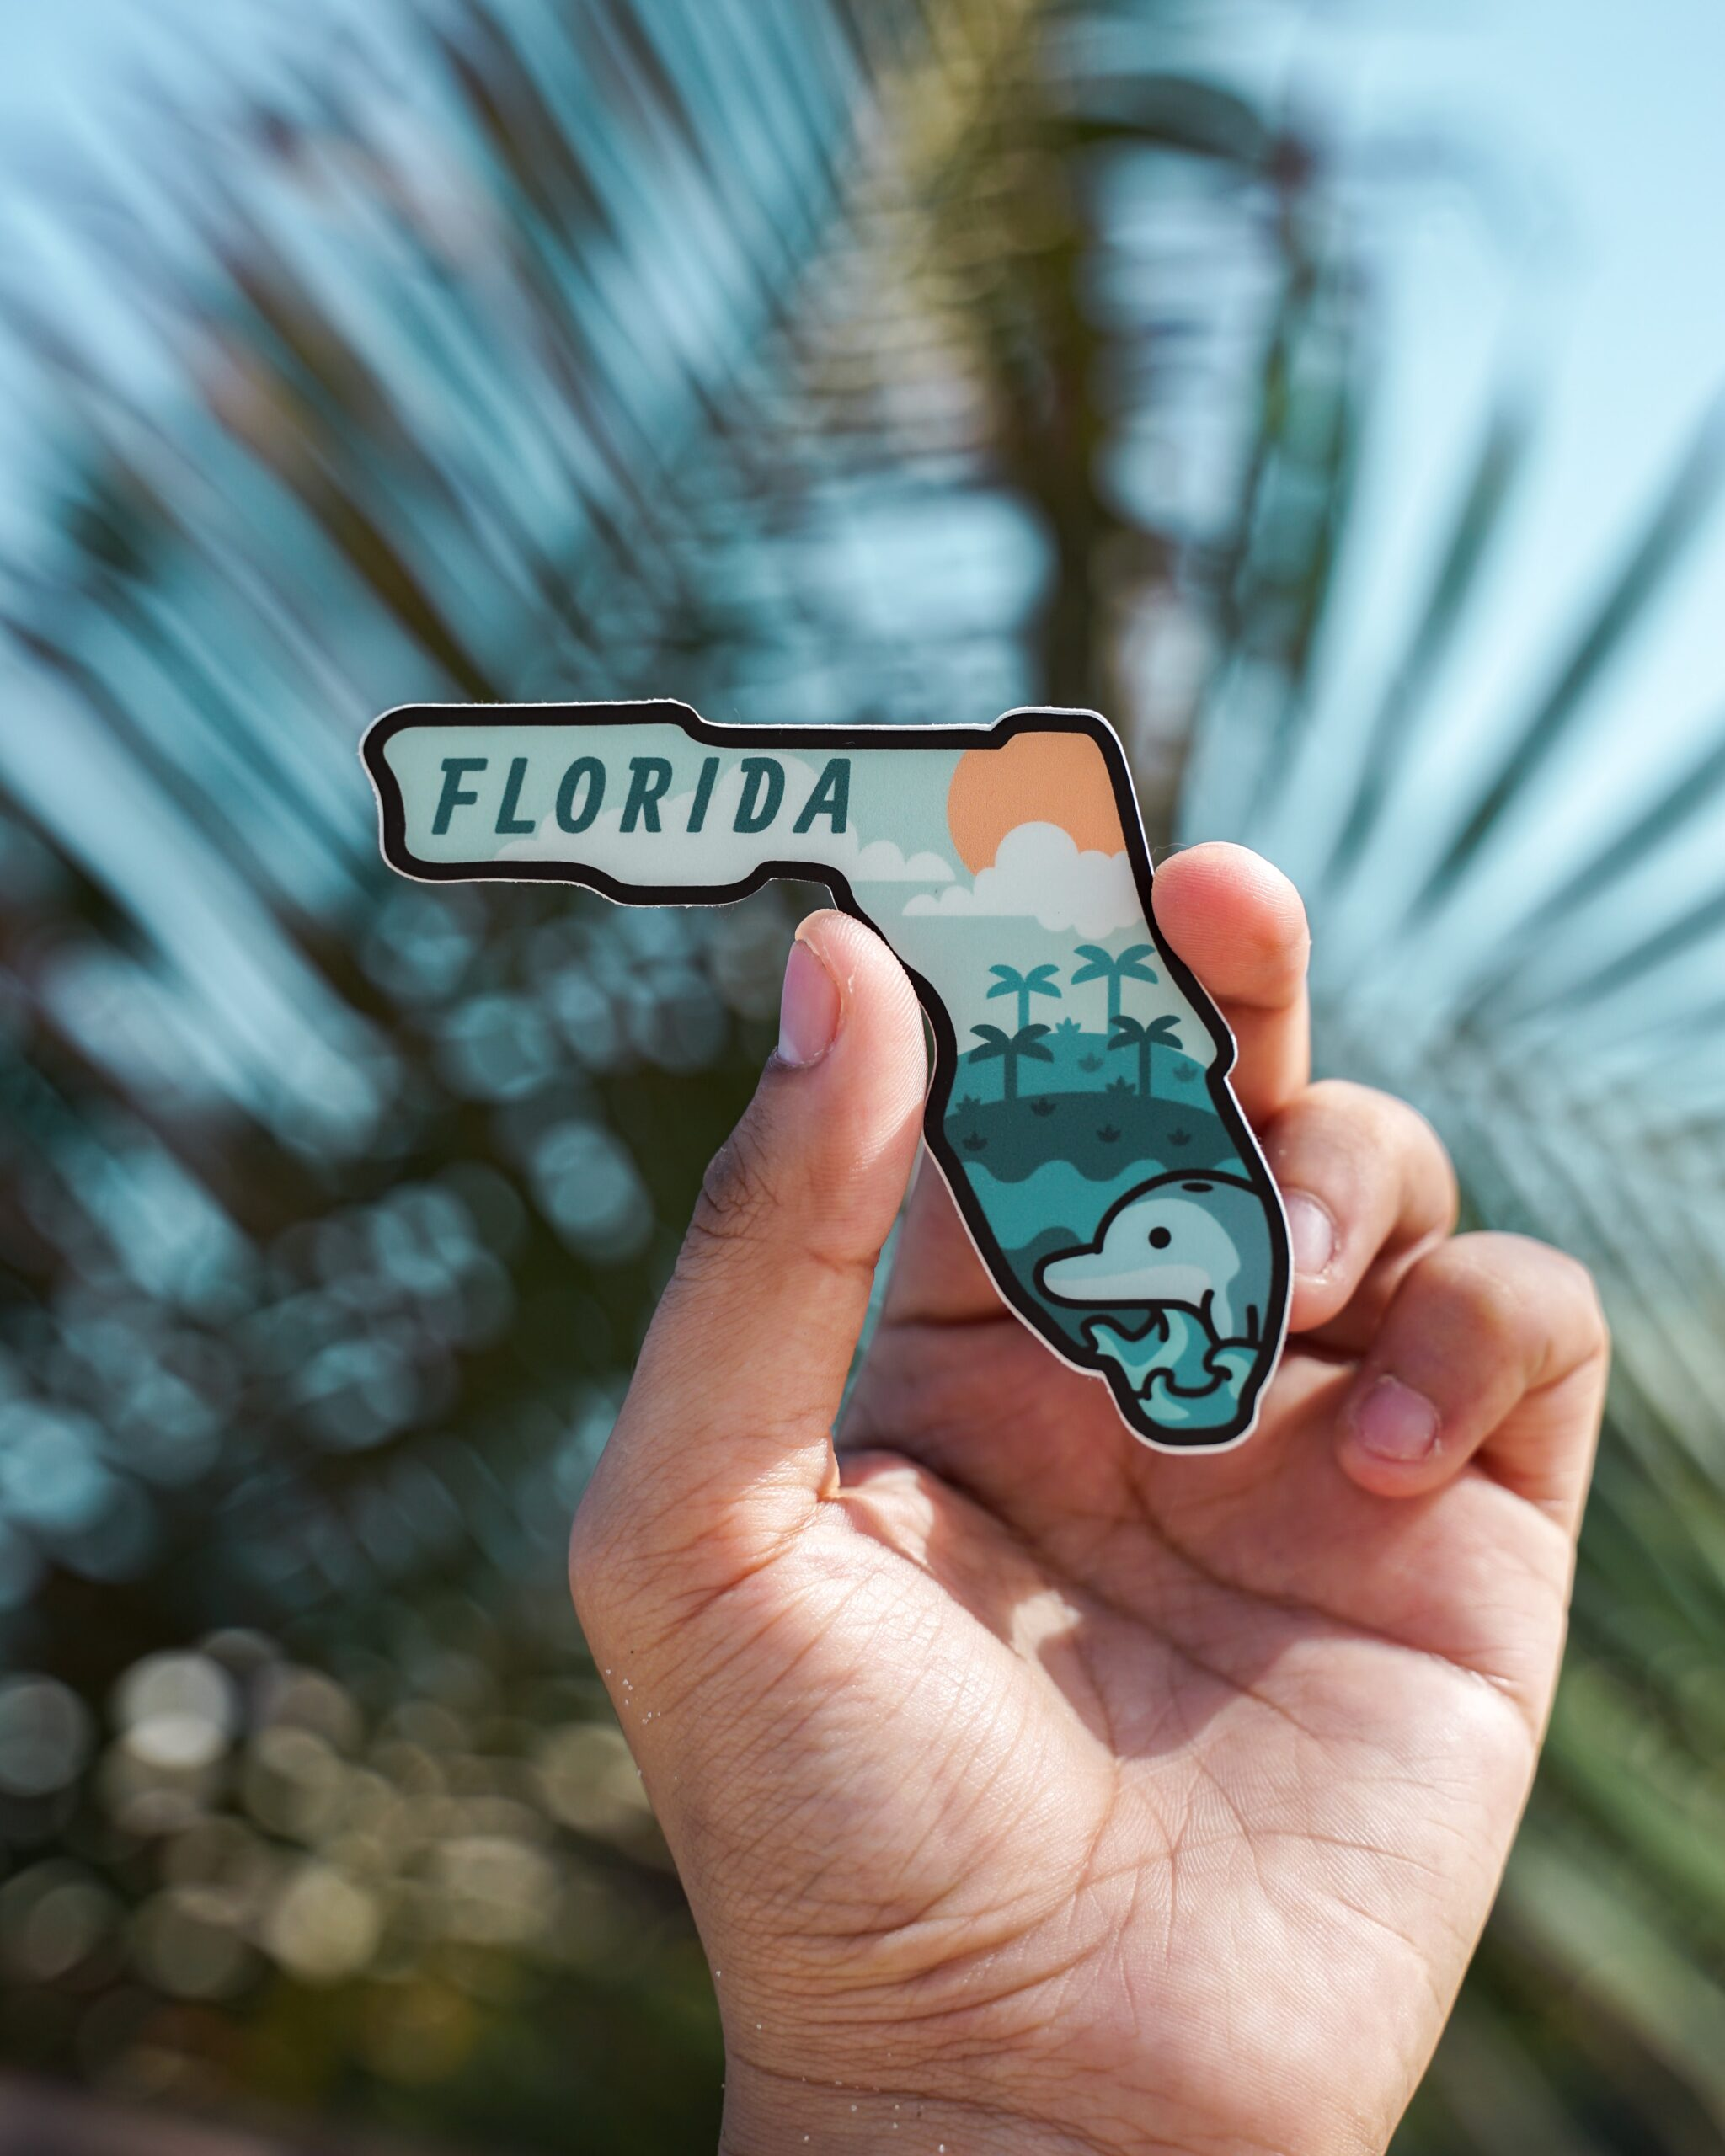 advantages and disadvantages of living in florida